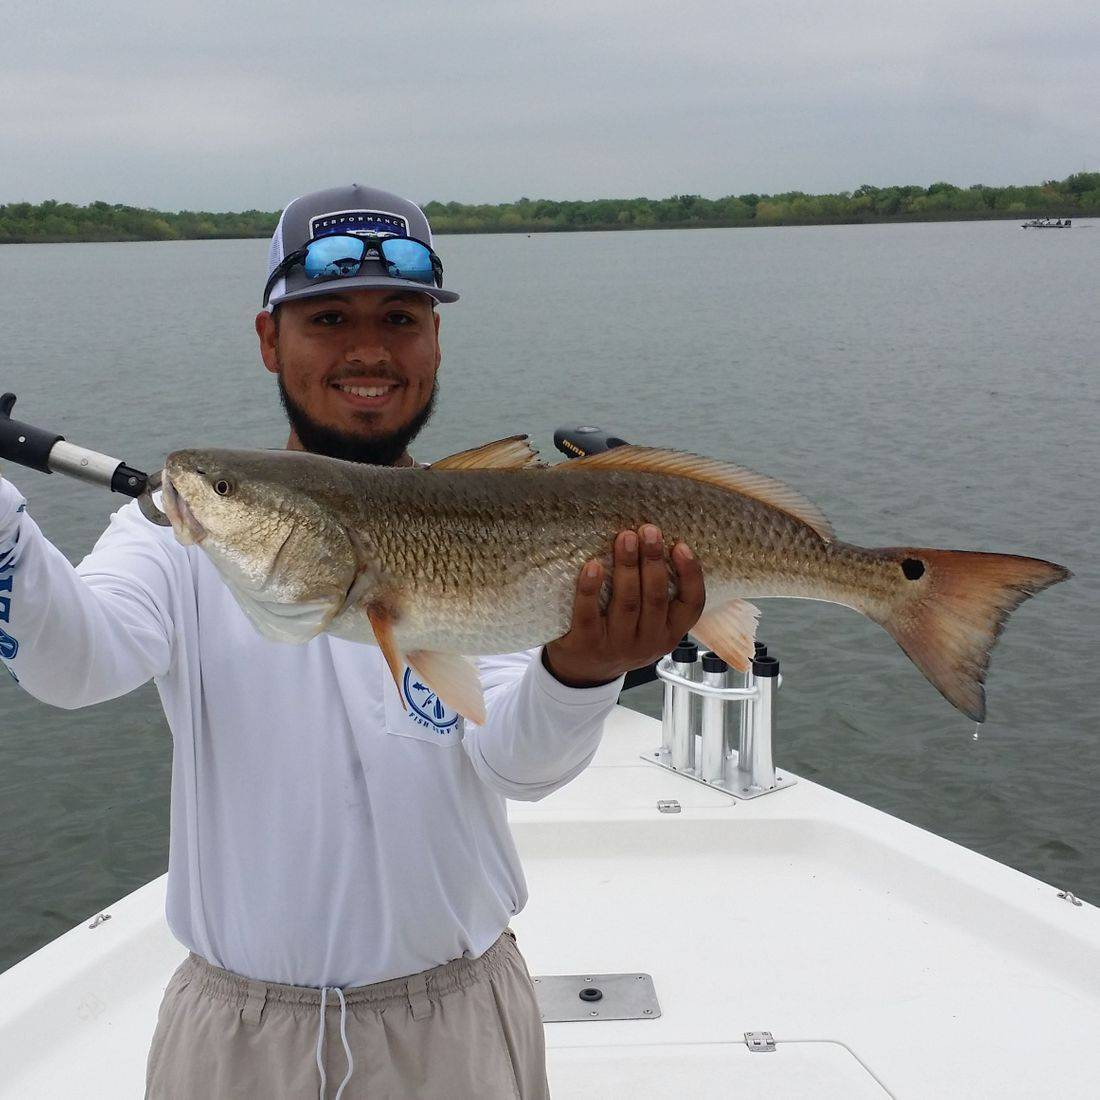 Redfish fishing at Brauning can be awesome. The schools are and challenging but rewarding. Fishing for Redfish in our San Antonio, Texas local lakes. Bones Fishing Guide Service provided an amazing fishing trip on the water and putting his clients on some Redfish.